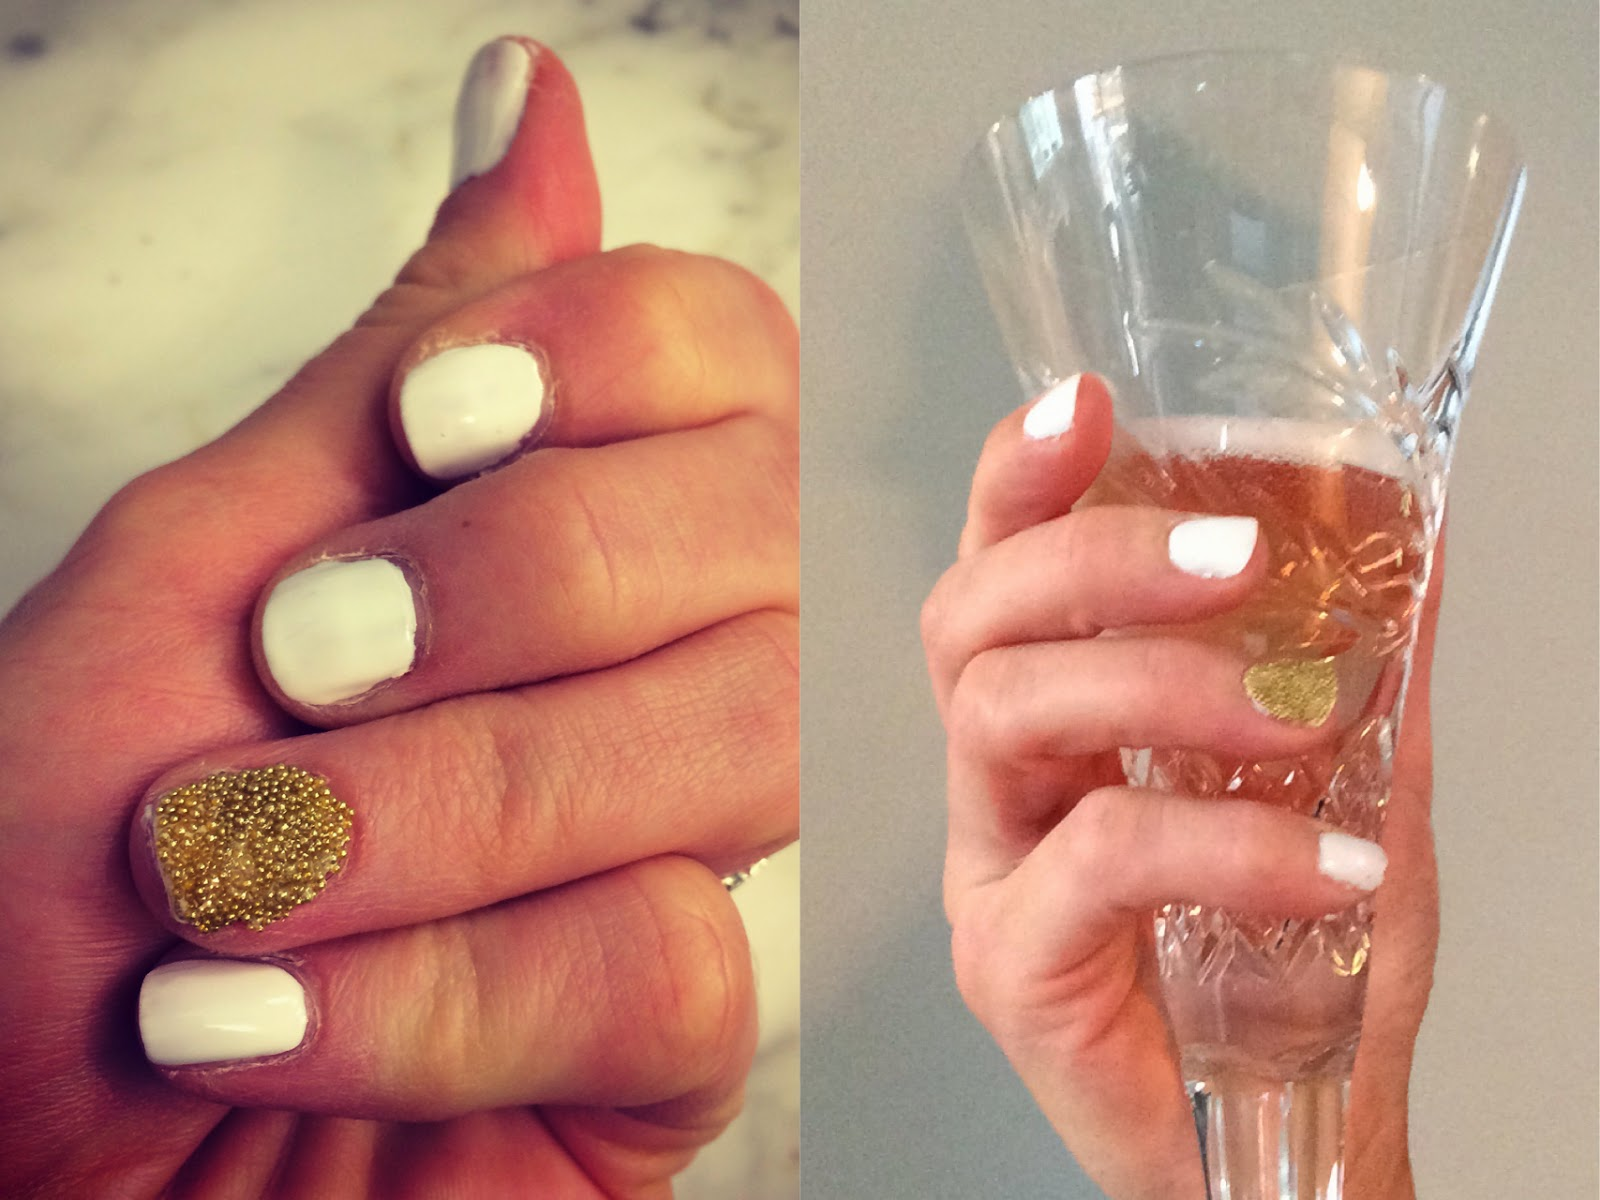 Diner en Blanc: Noktivo Manicure with Gold Caviar Accent